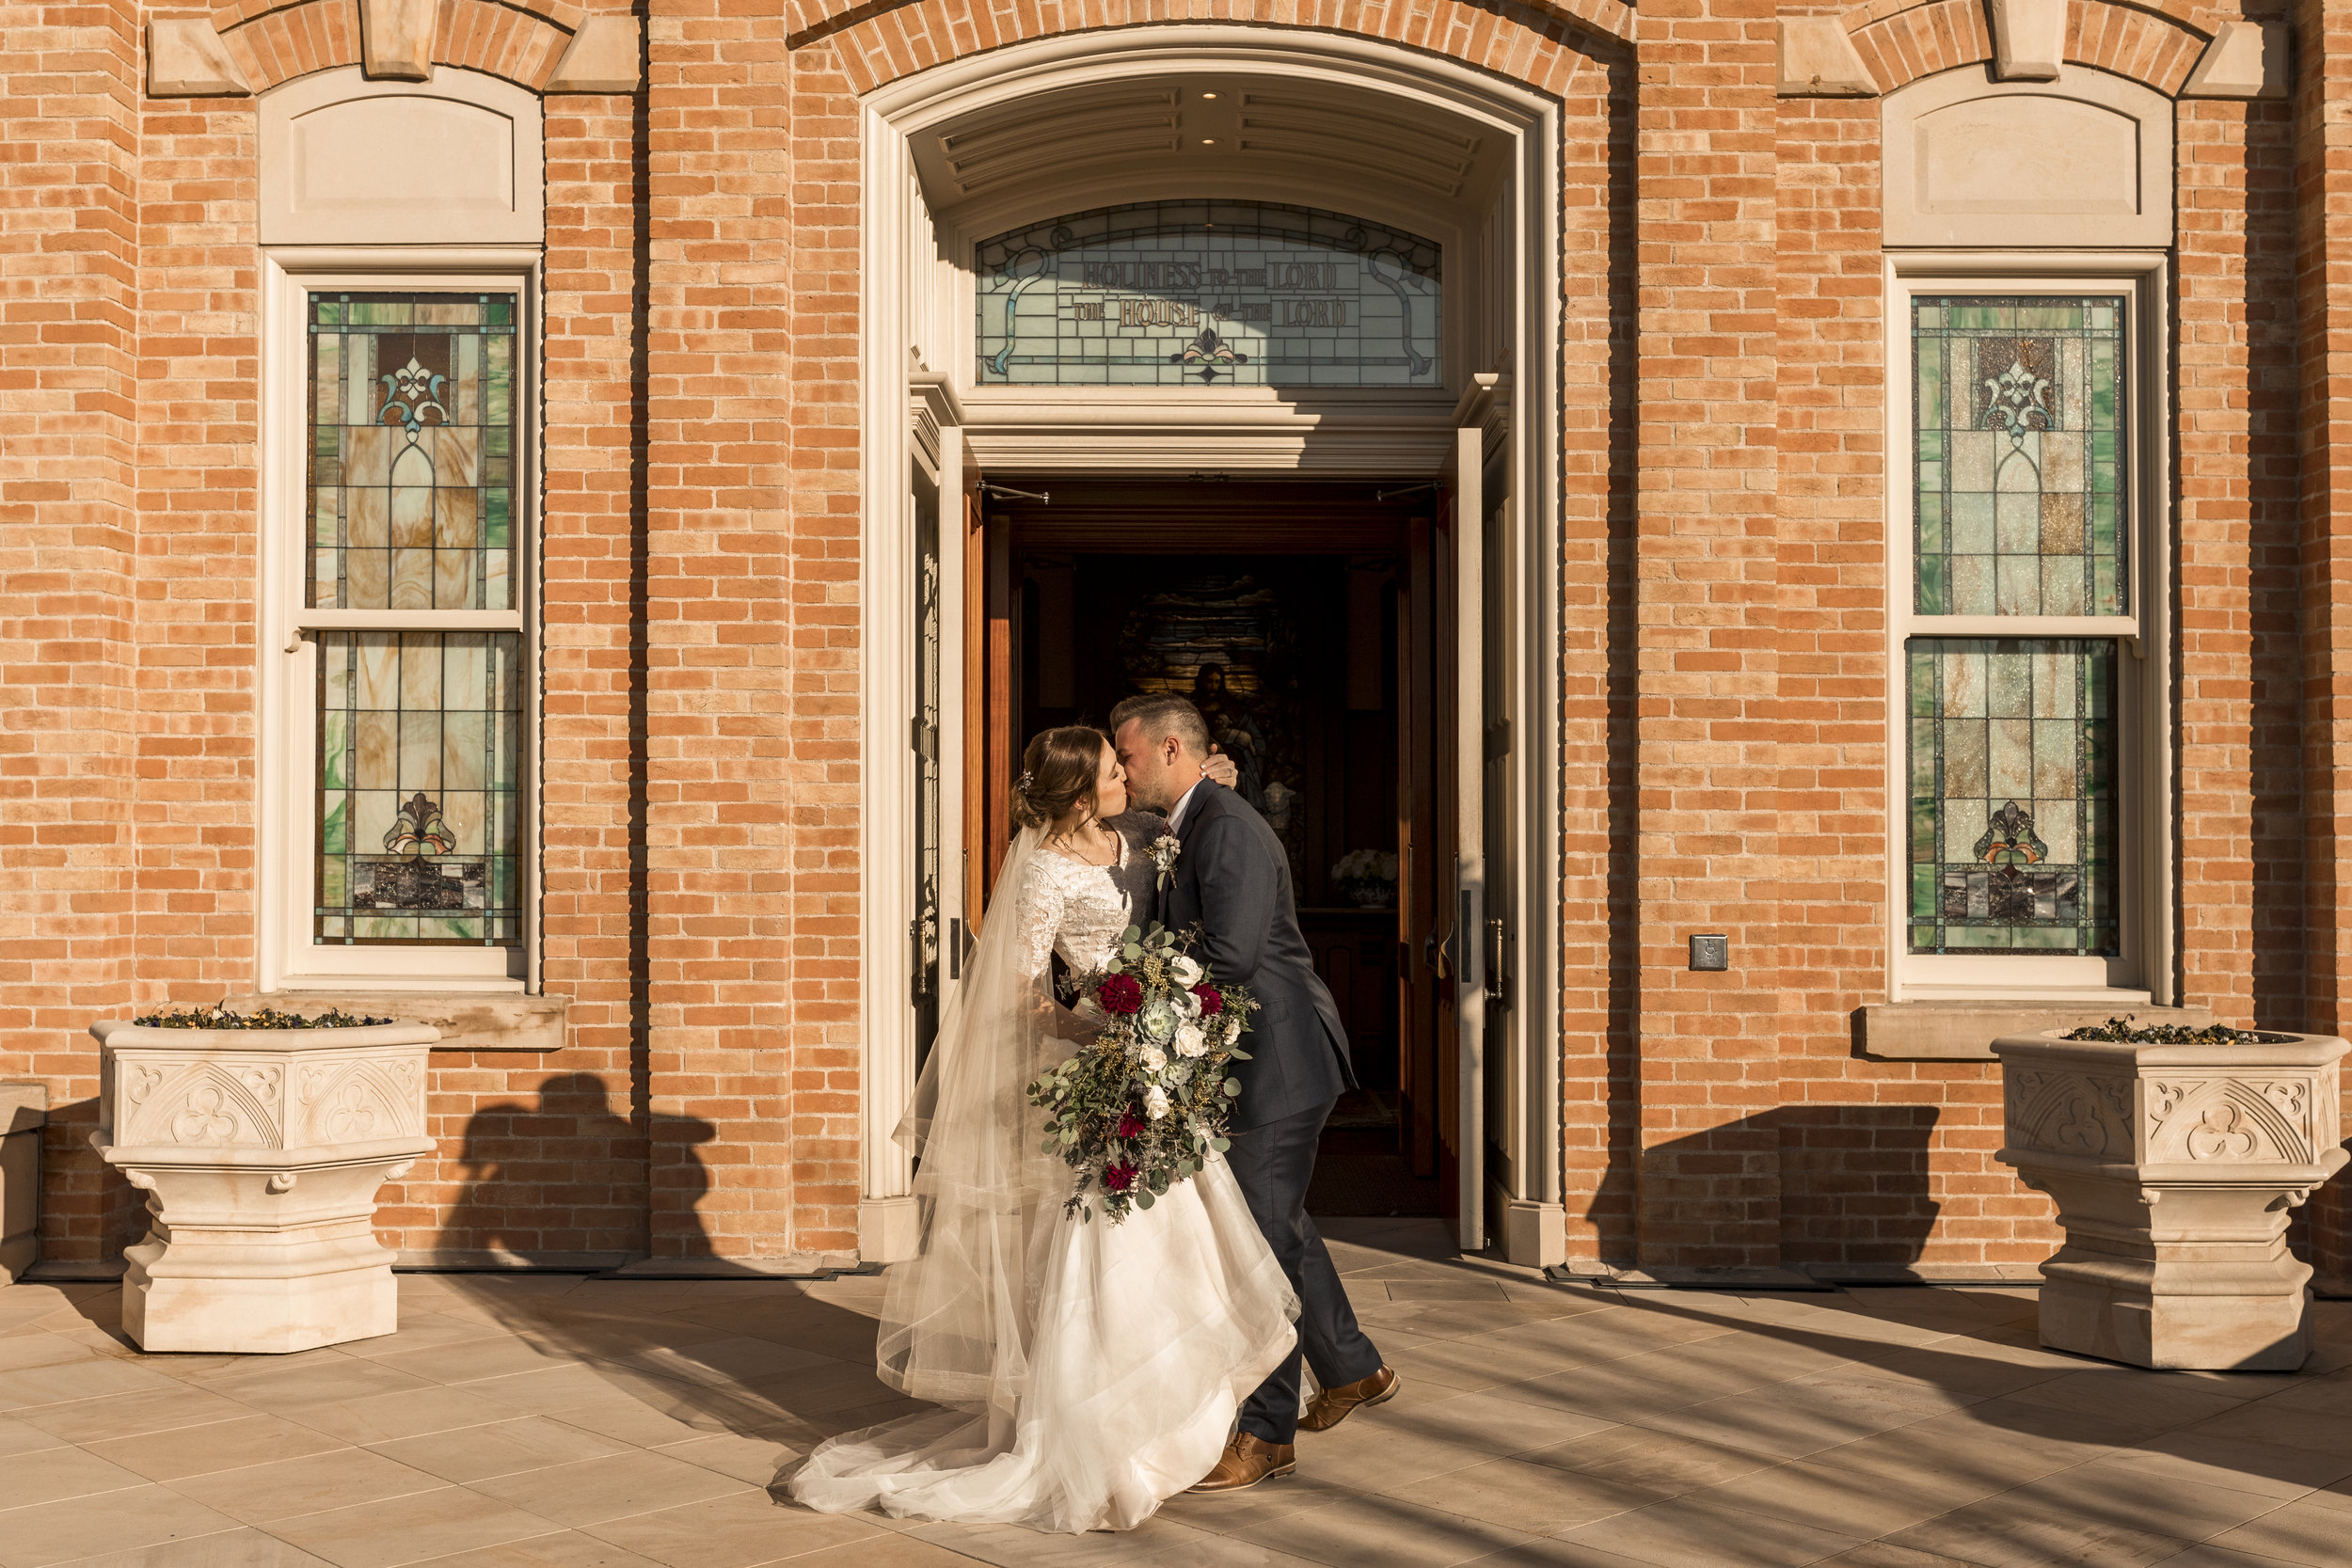 Skyler + Austin | Provo City Center Temple Wedding | Bri Bergman Photography 010.JPG